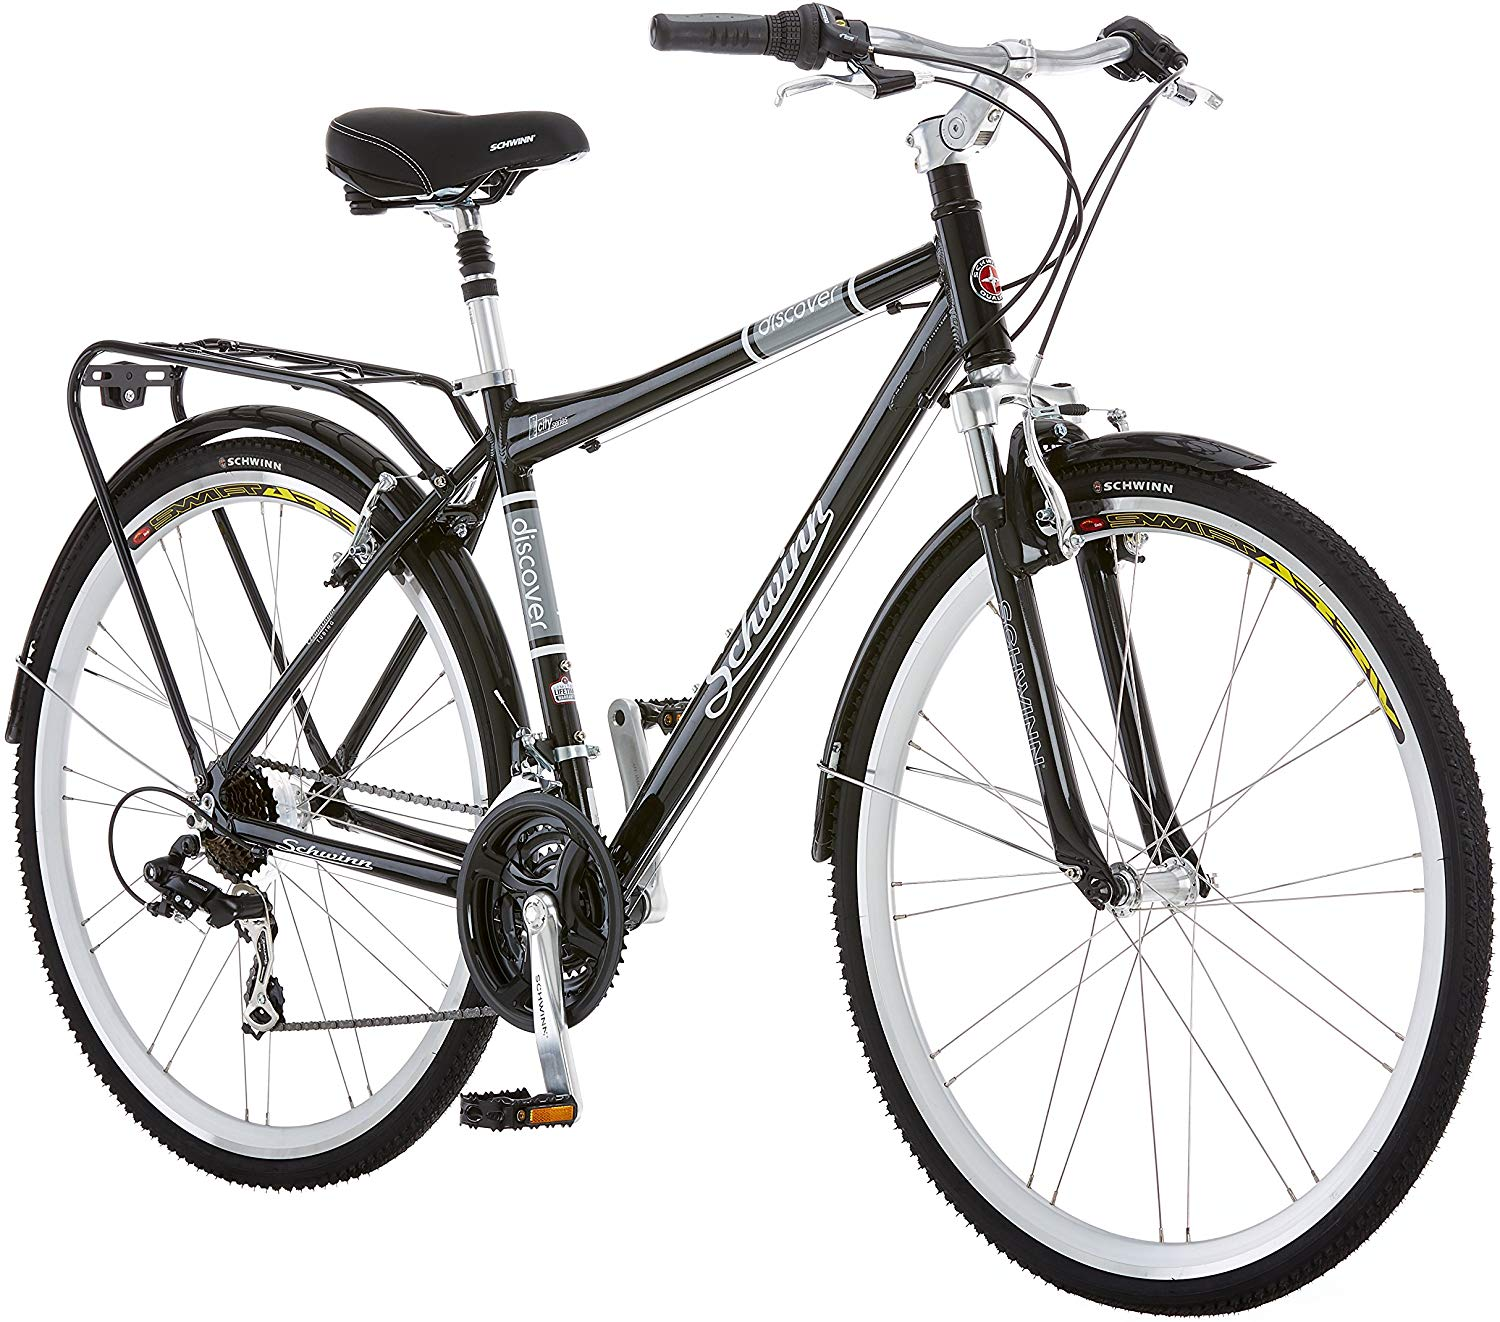 Schwinn Discover Hybrid Bikes for Men and Women, Featuring Aluminum City Frame, 21-Speed Drivetrain, Front and Rear Fenders, Rear Cargo Rack, and Kick-Stand